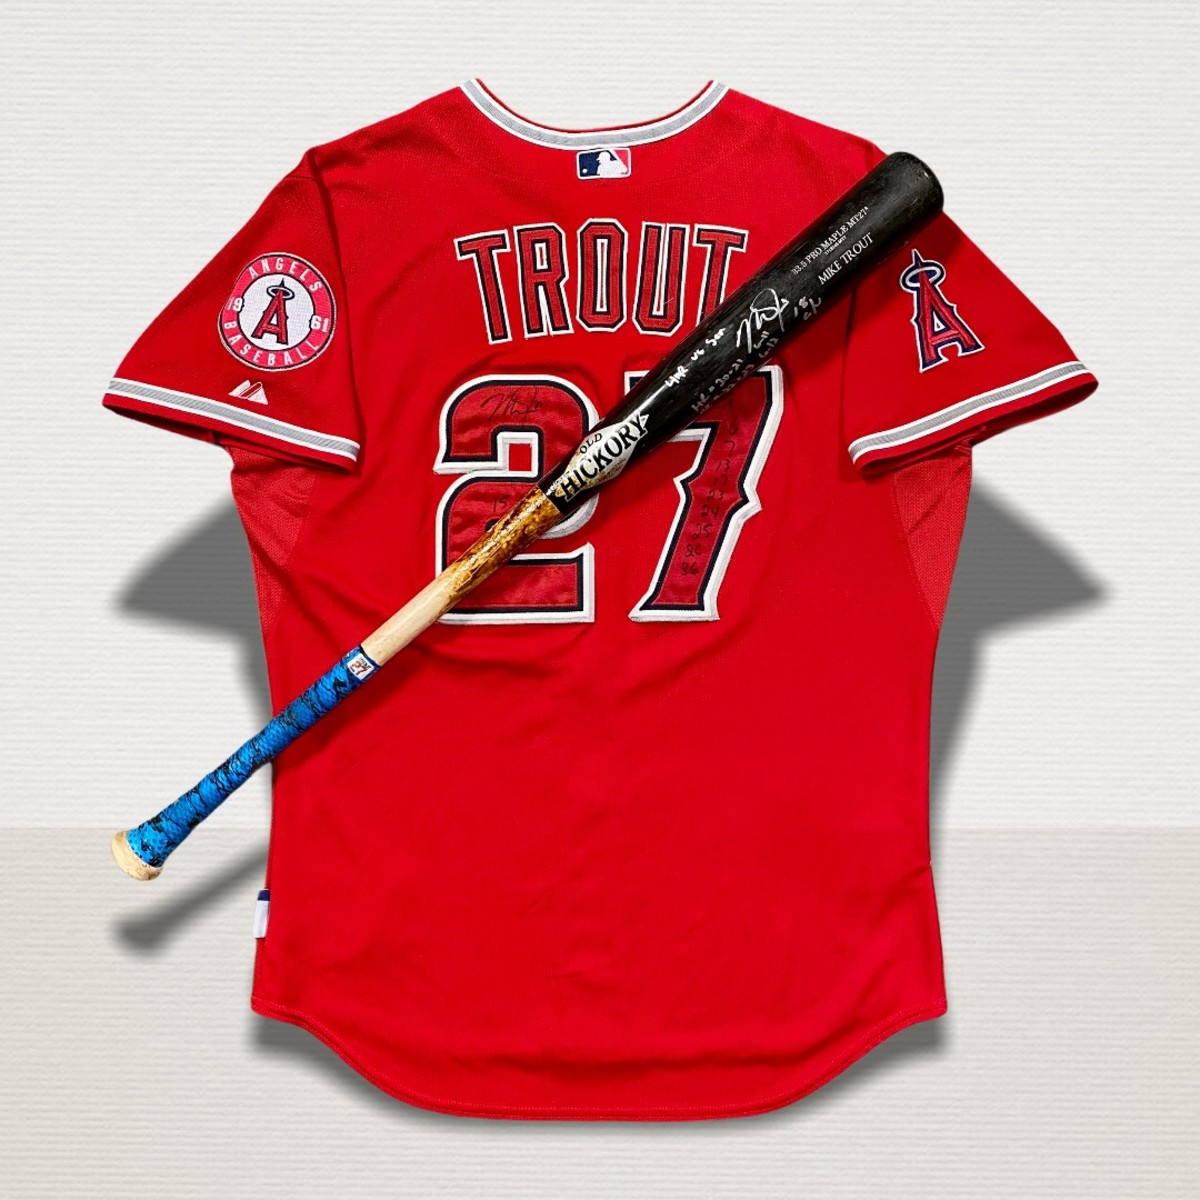 Mike Trout game-used jersey and bat.